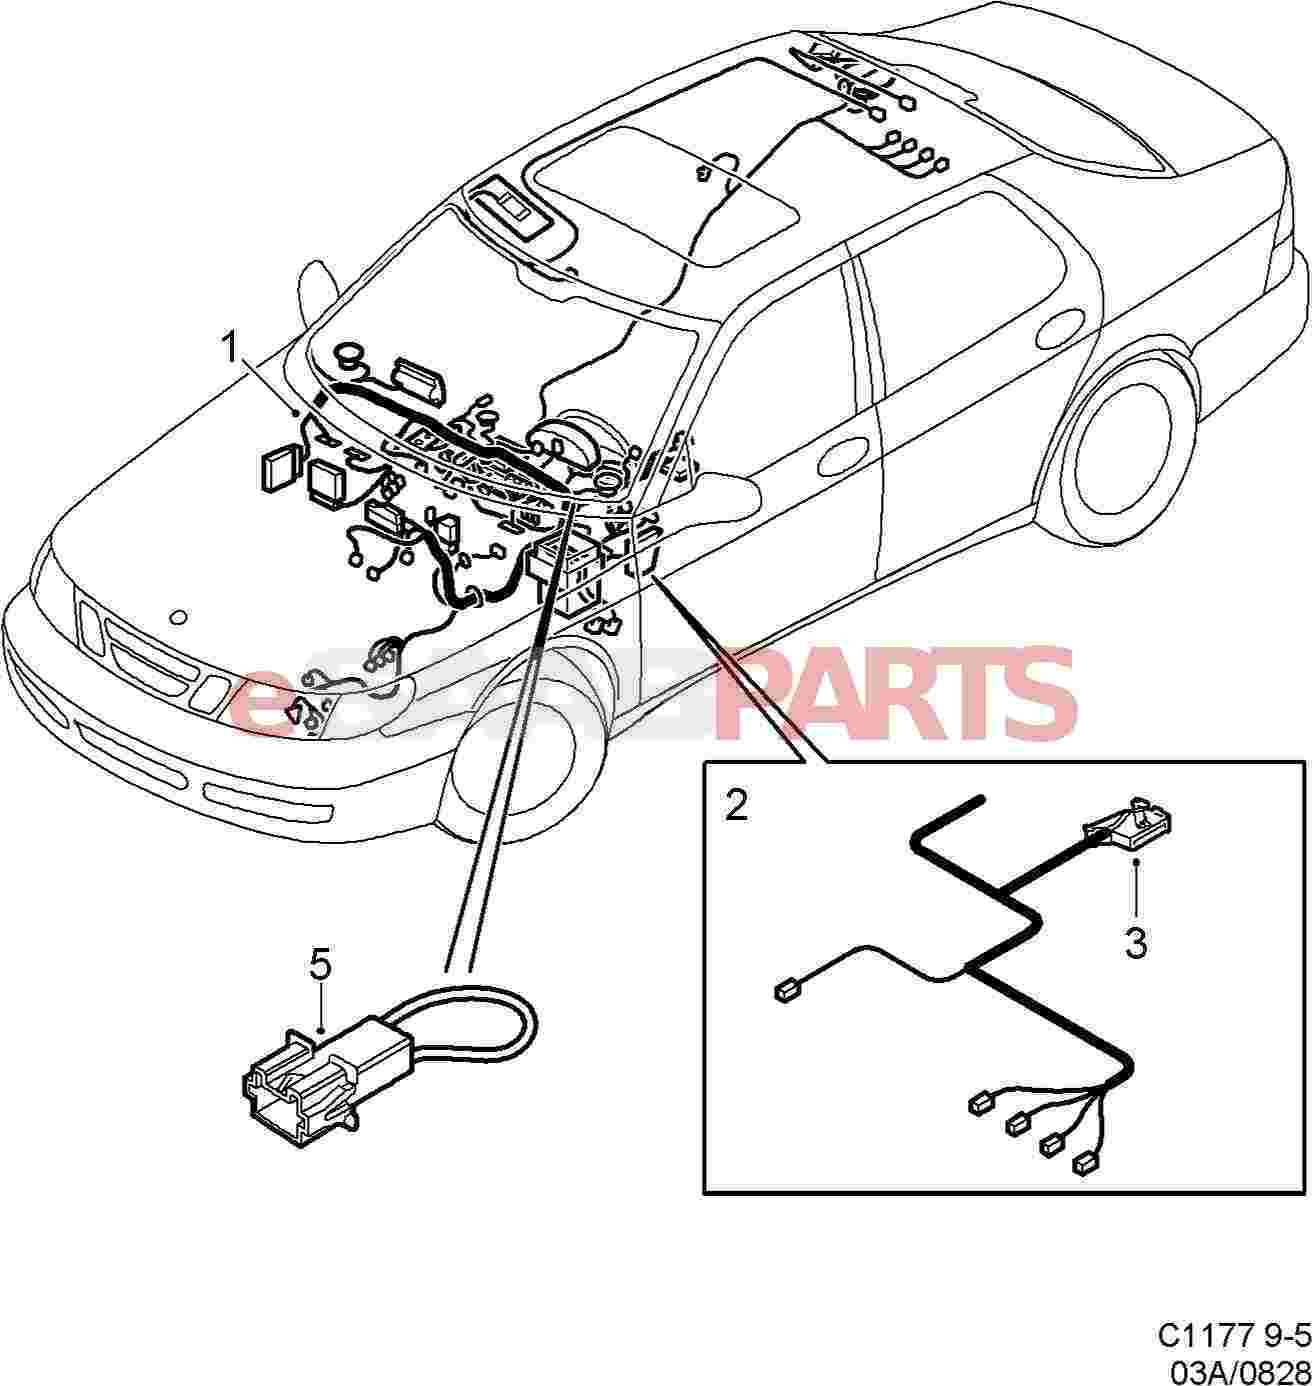 2004 Subaru Outback Stereo Wiring Diagram together with gsmportal likewise Aftermarket Car Stereo Wiring Harness likewise Camaro Power Windows Wiring Diagram as well Gm Alternator Harness Adapter. on radio wiring harness adapter toyota